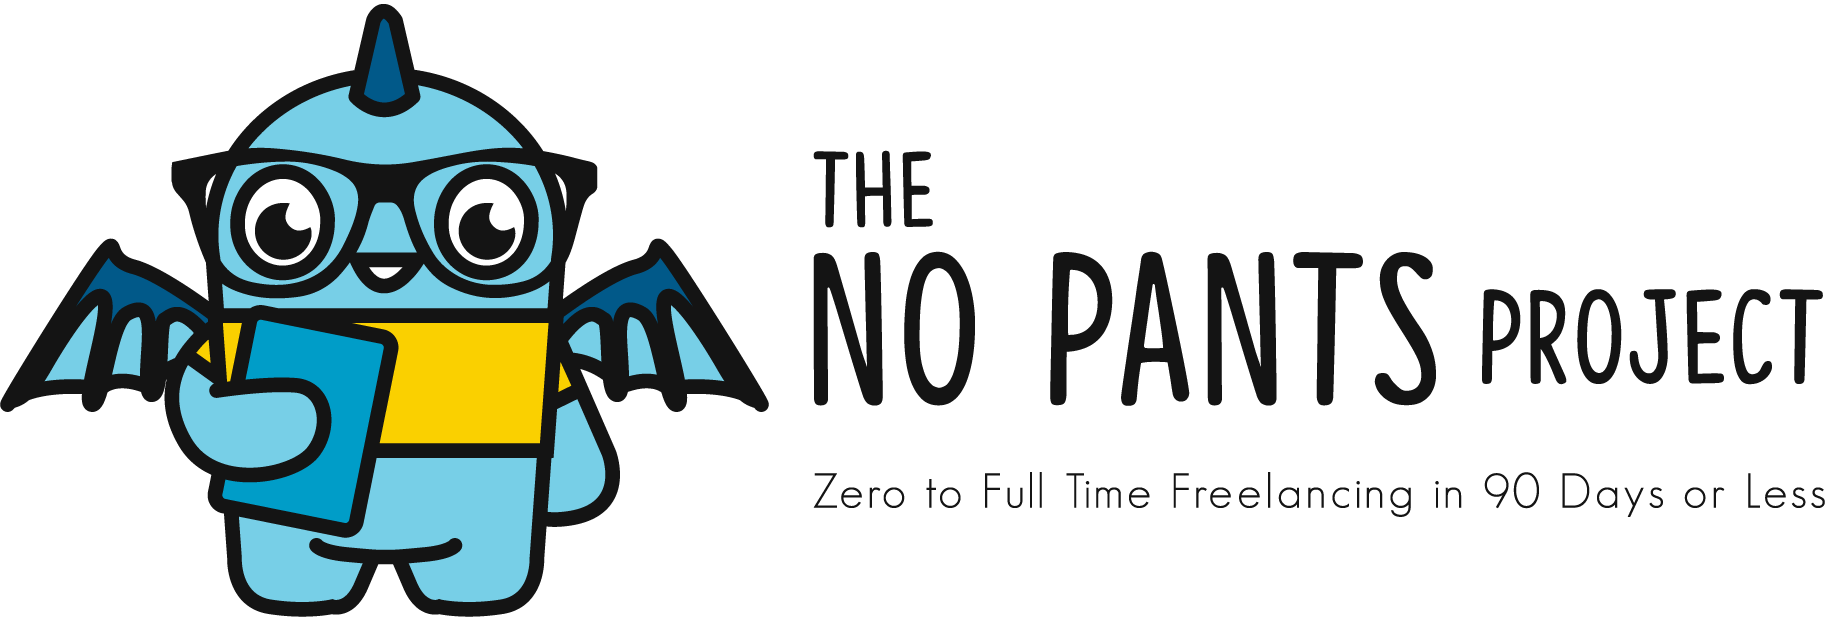 The No Pants Project - Full Time Freelancing